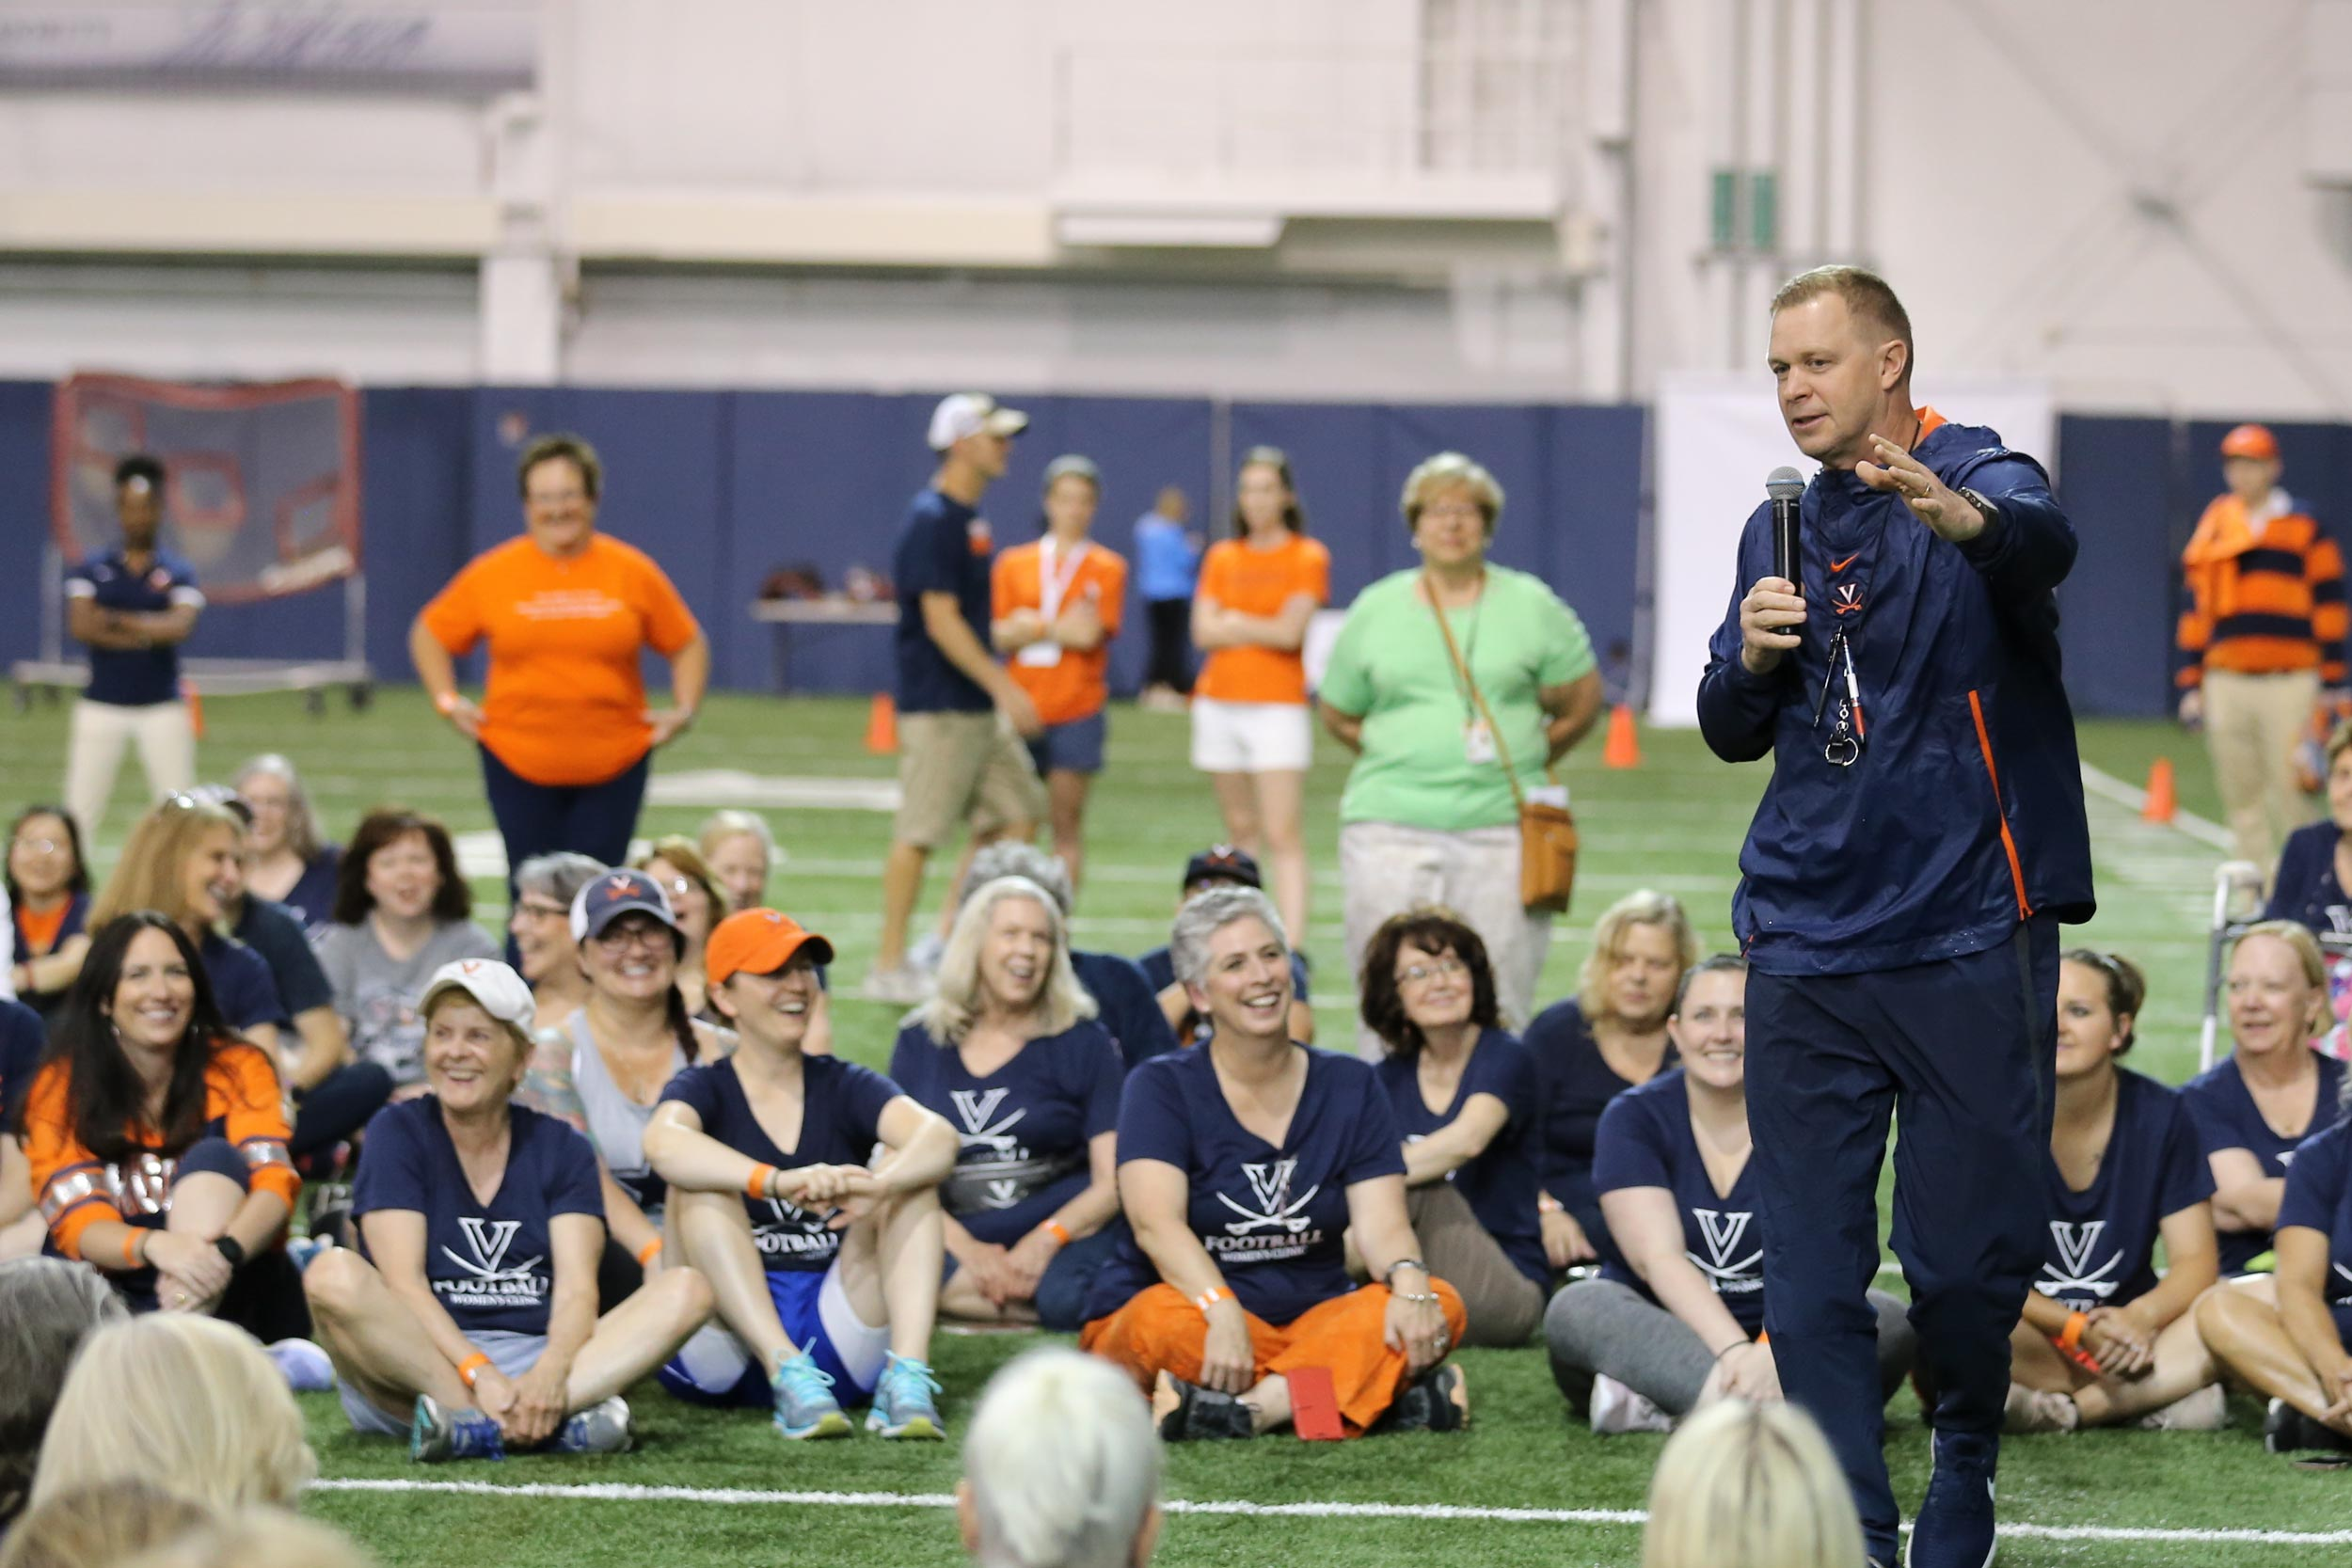 UVA football head coach Bronco Mendenhall chats with participants.